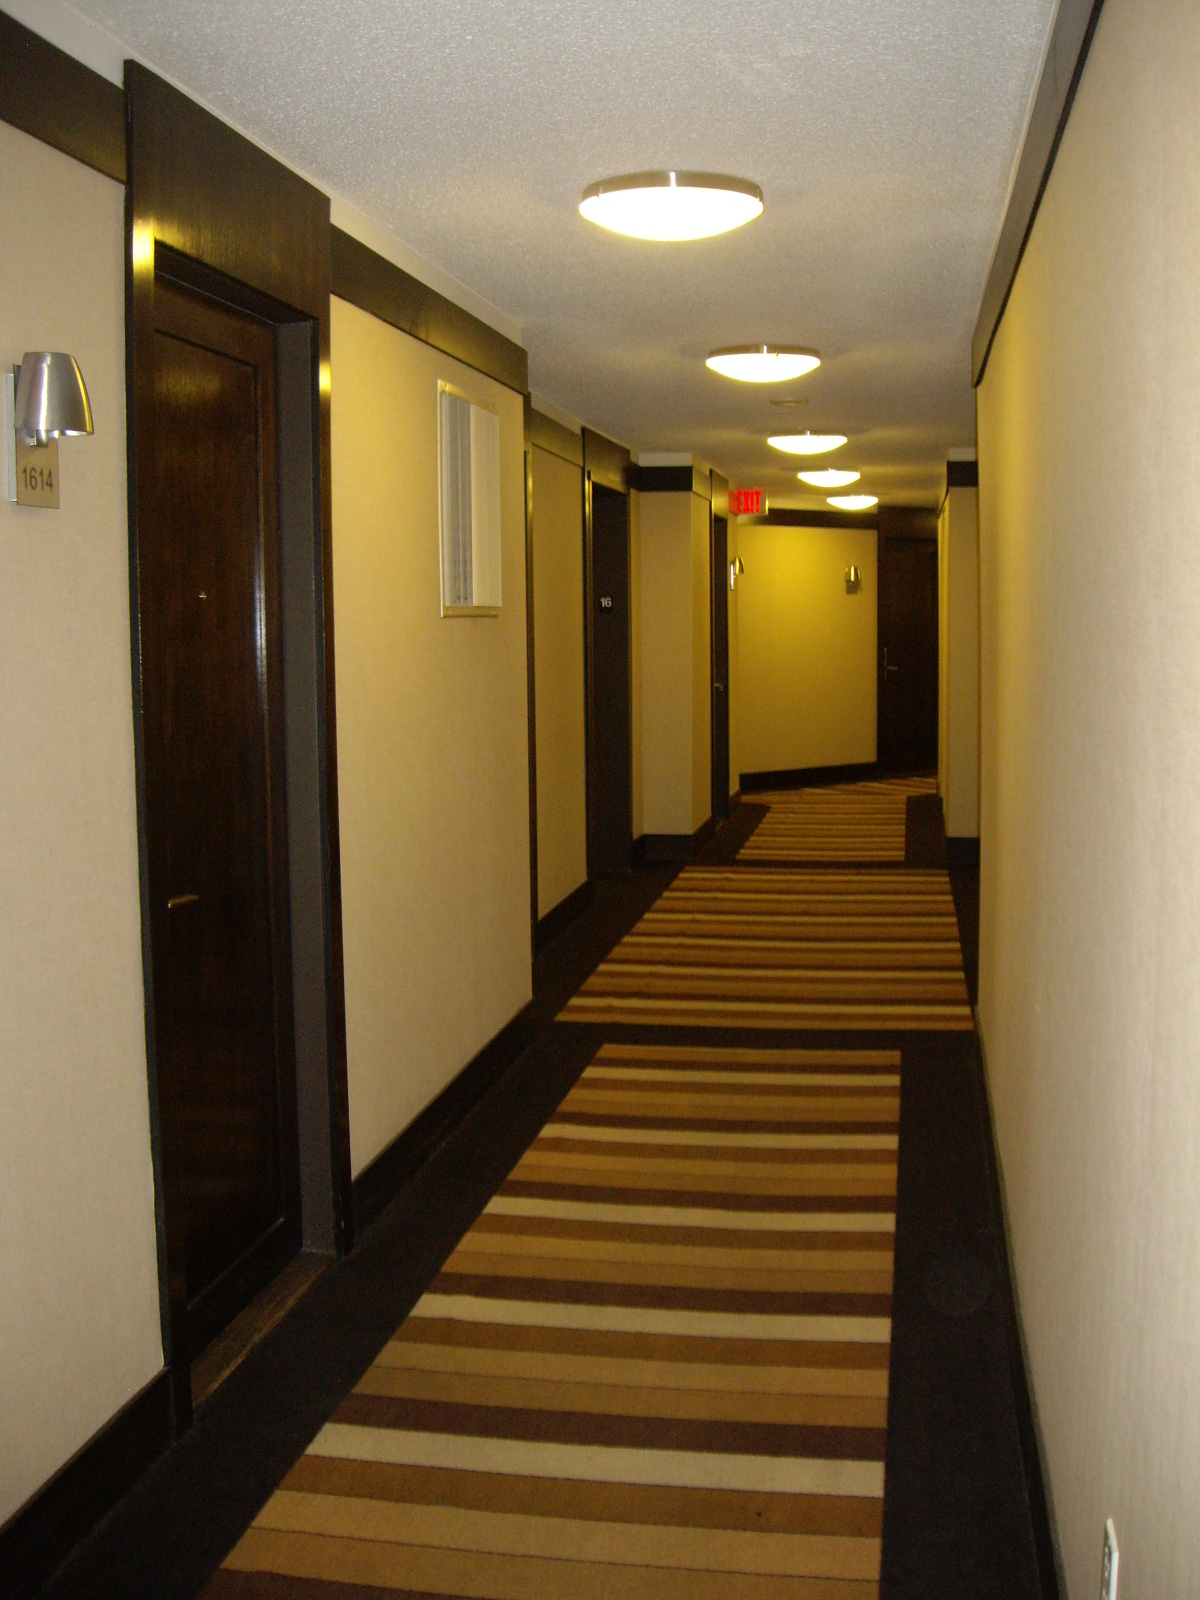 Existing Corridor Carpet and Elevator Lobby